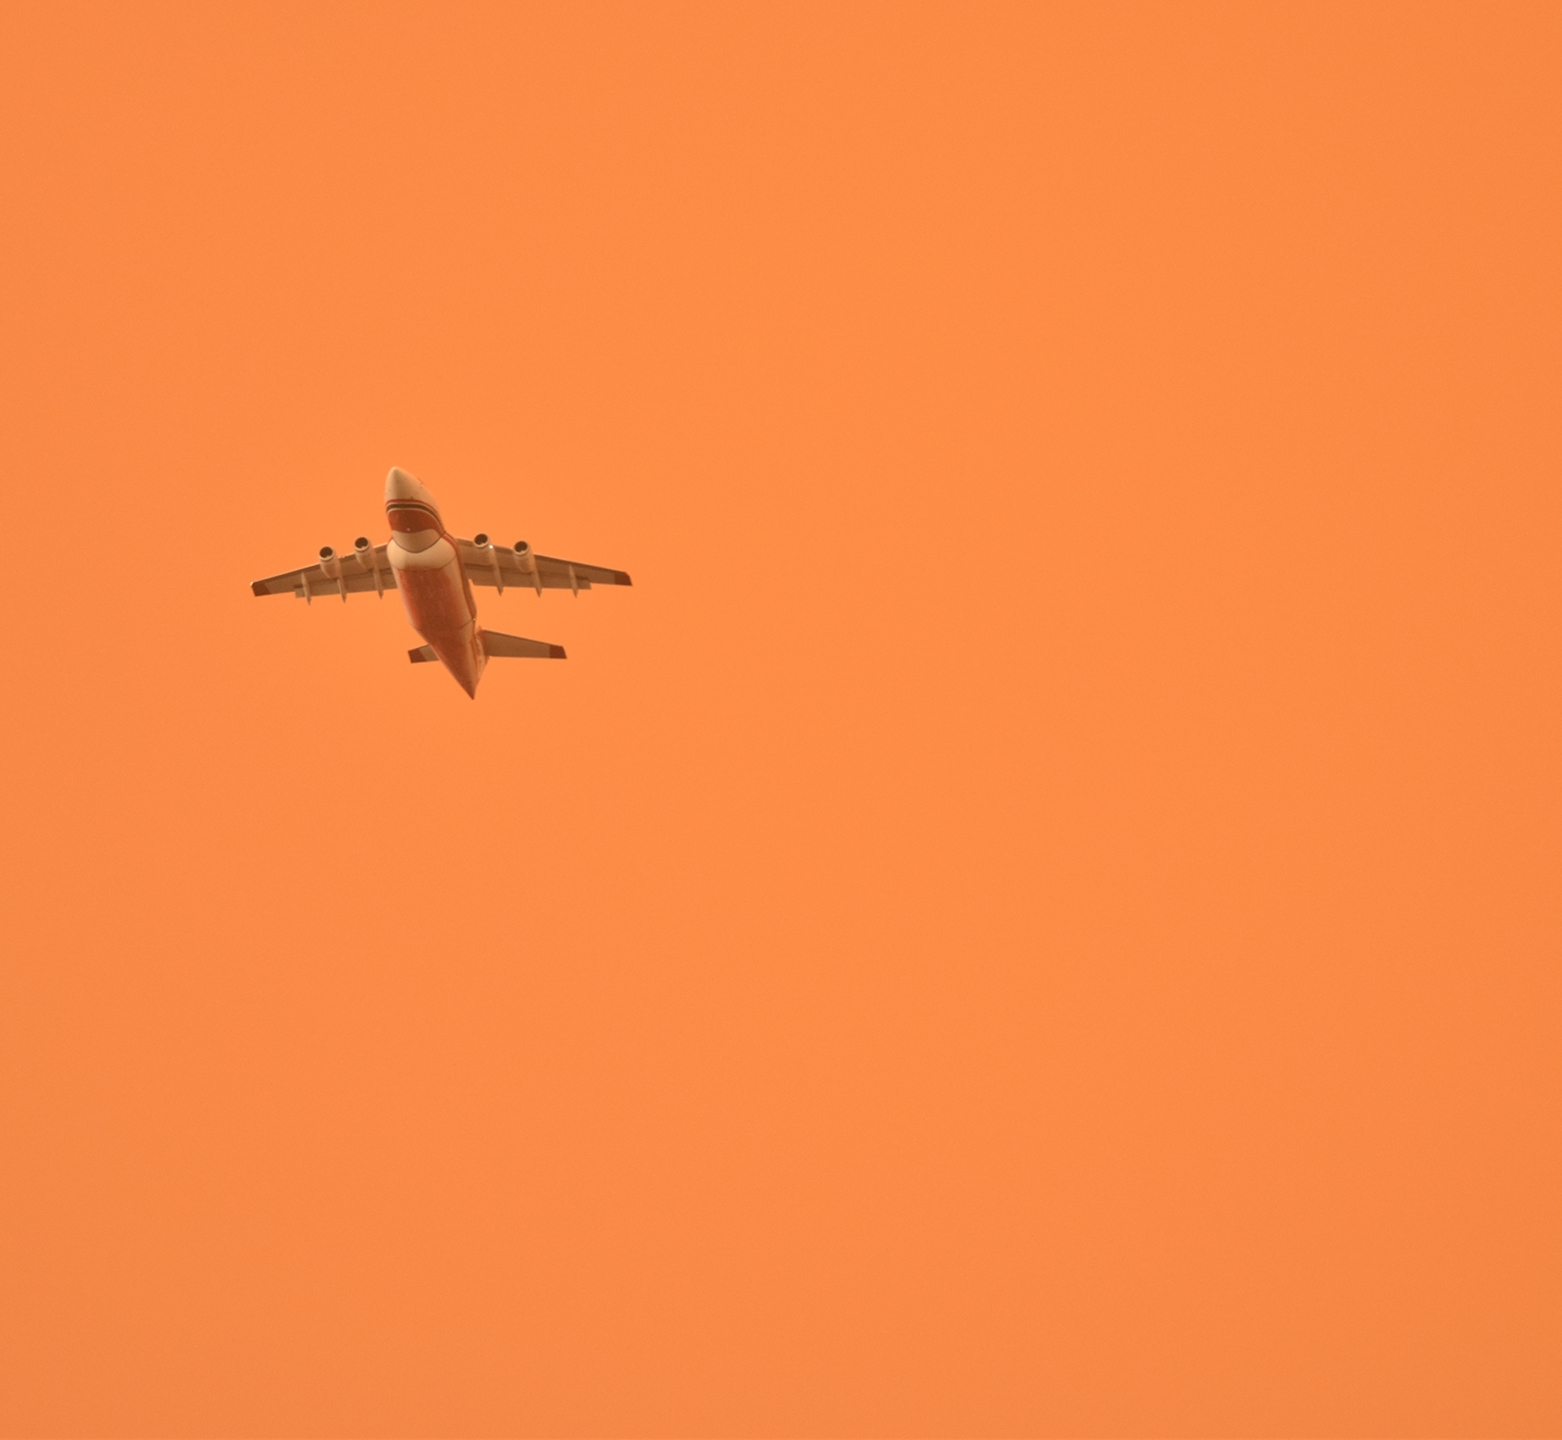 A fire-fighting airtanker flies through a smoke-filled sky as it battles the Carr Fire in Redding, California on July 27, 2018. (Photo by Boone Ashworth)